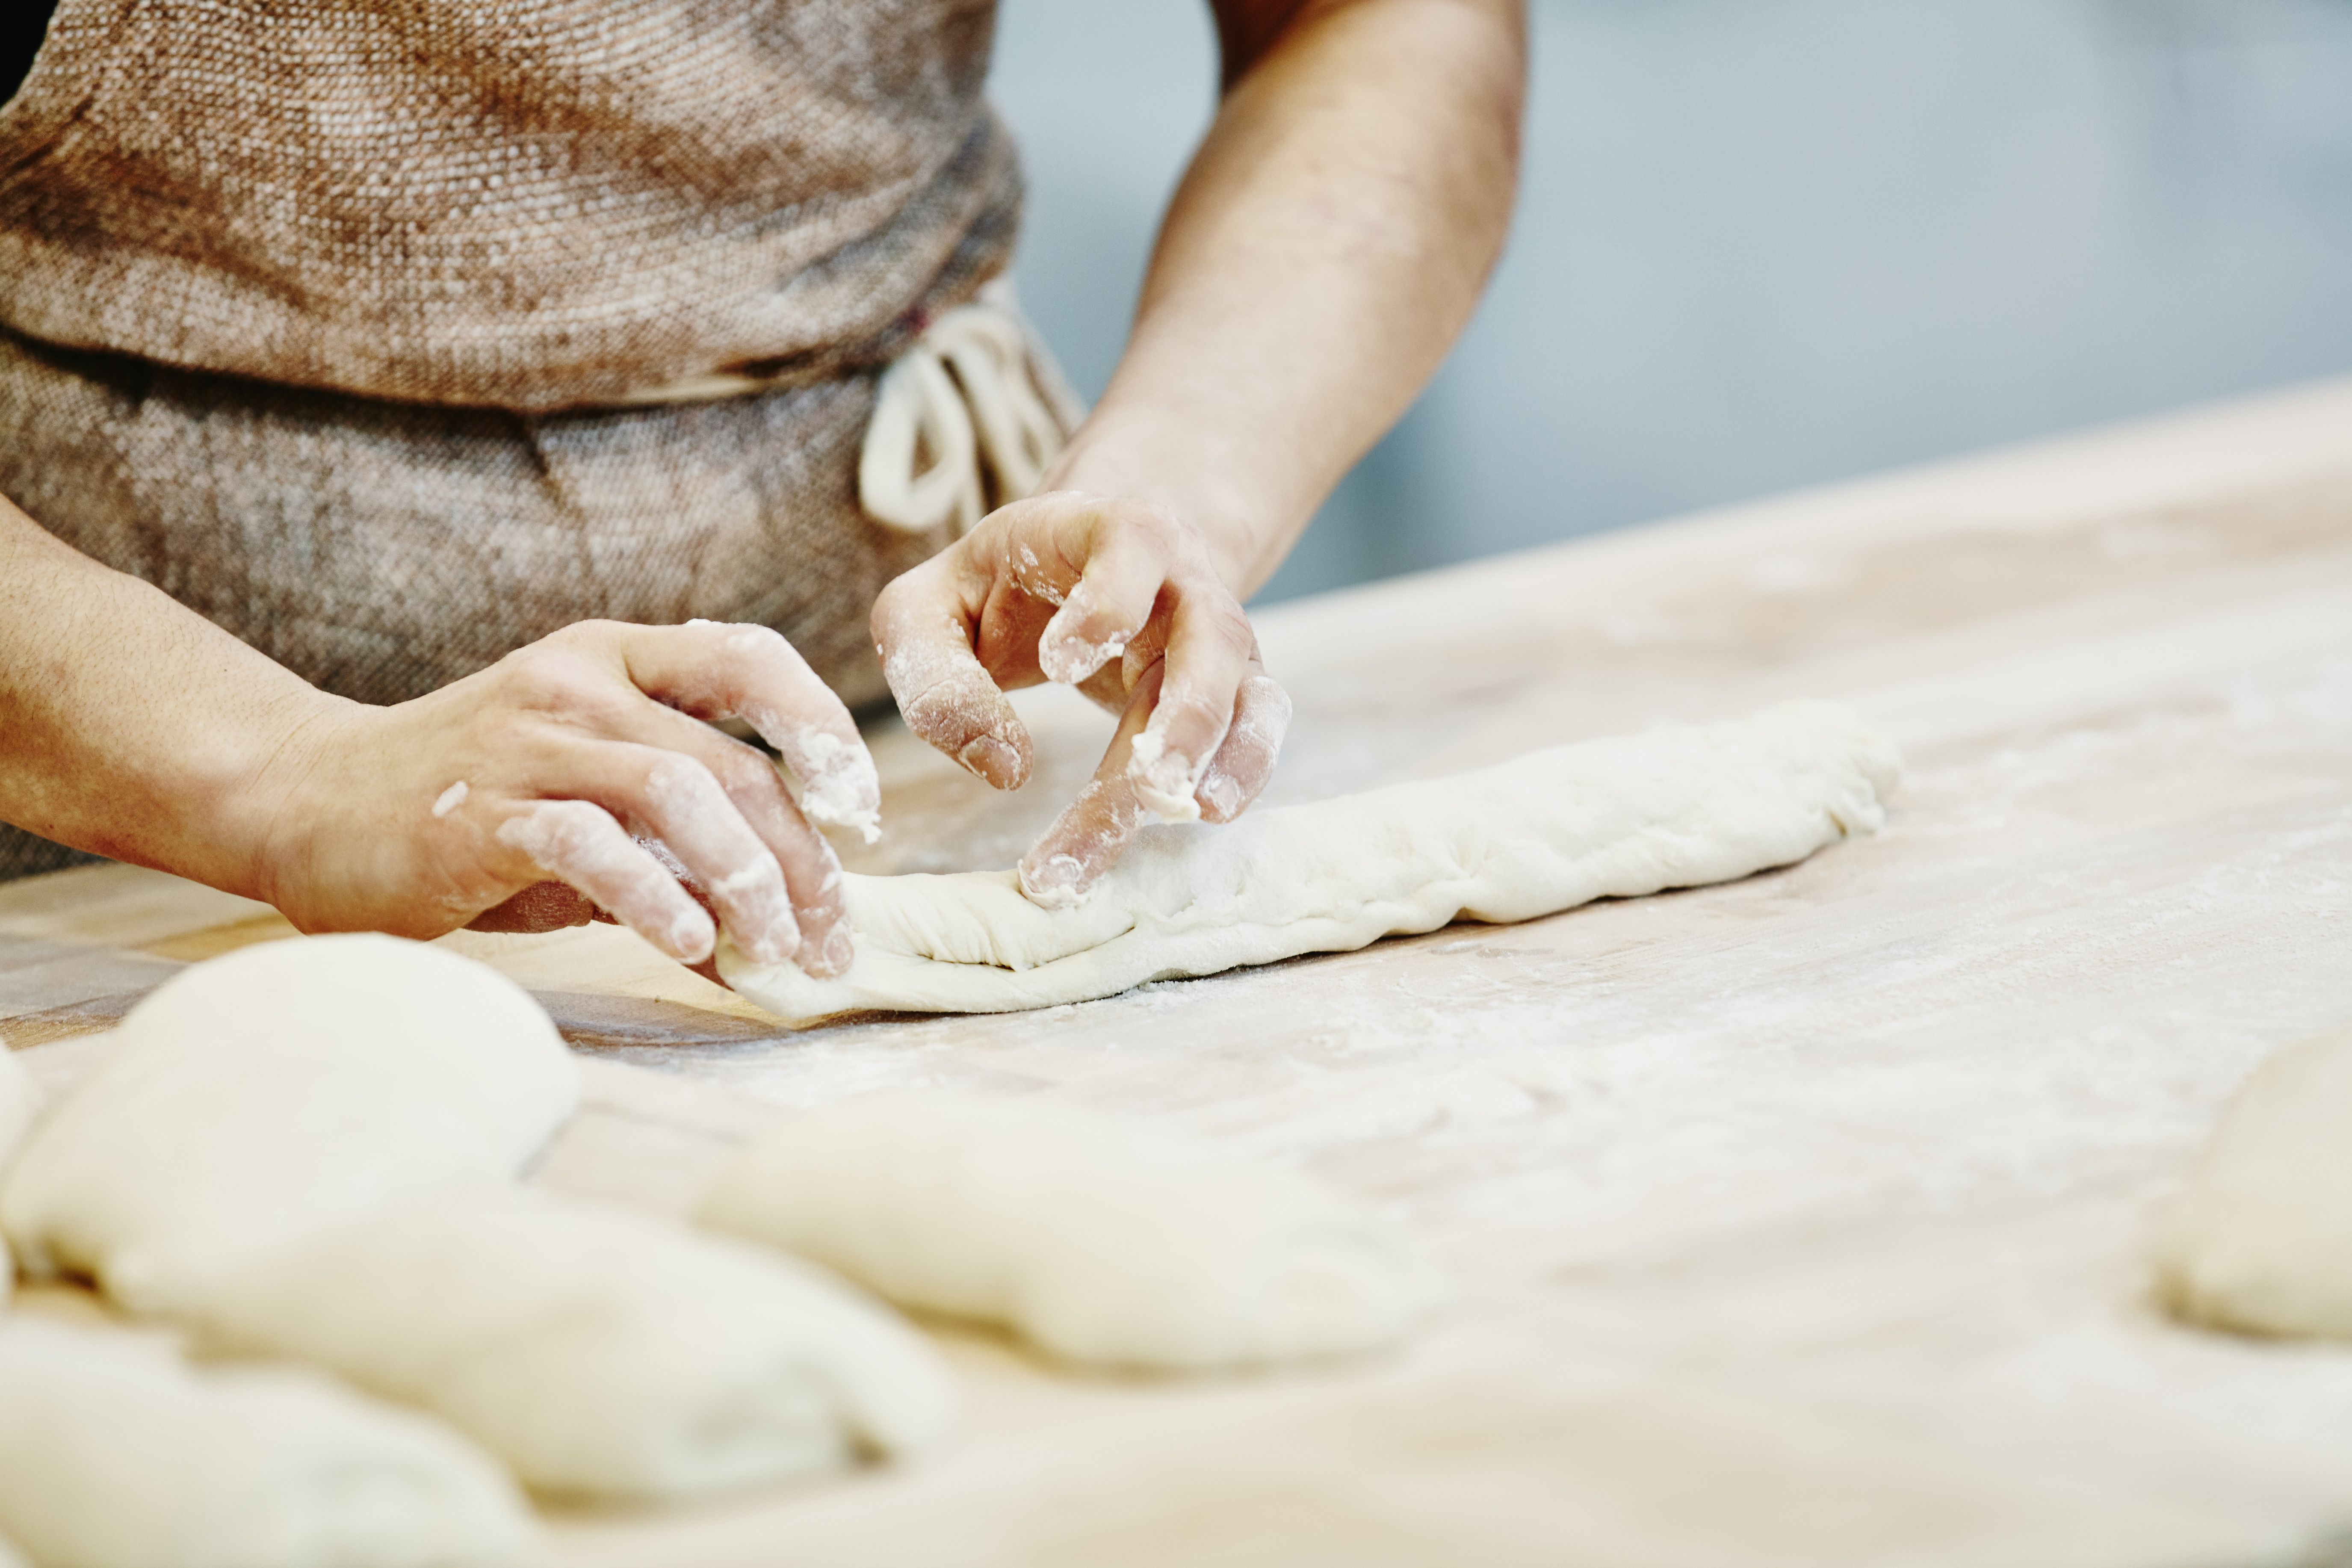 How to Start a Home Based Baking Business   Business, Bakery ideas ...